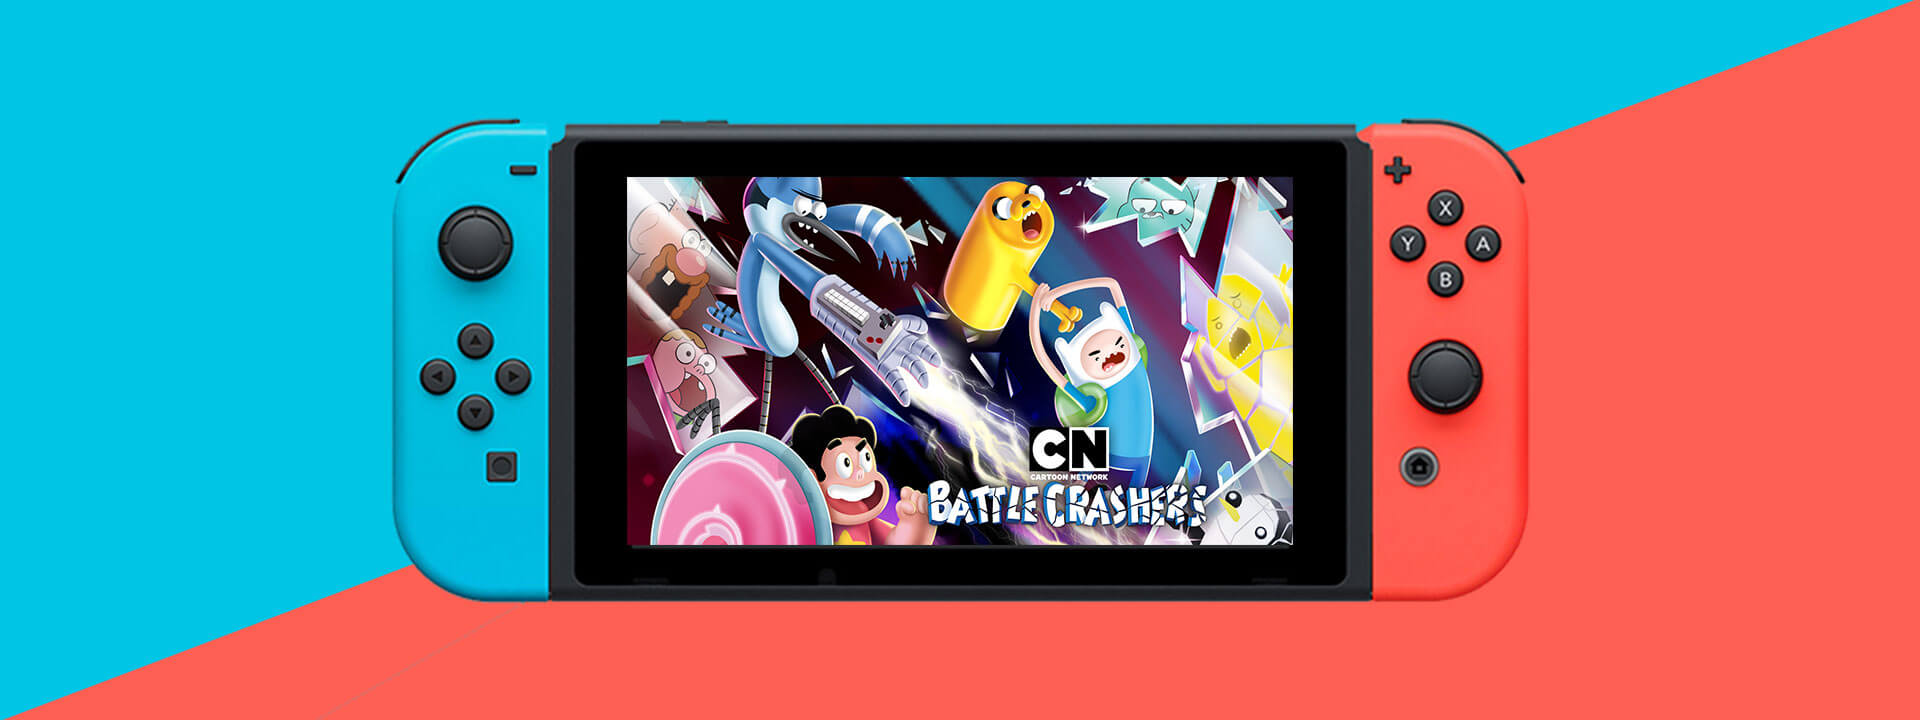 CN Battle Crashers nintendo switch 01 - بازی CN Battle Crashers مخصوص Nintendo Switch